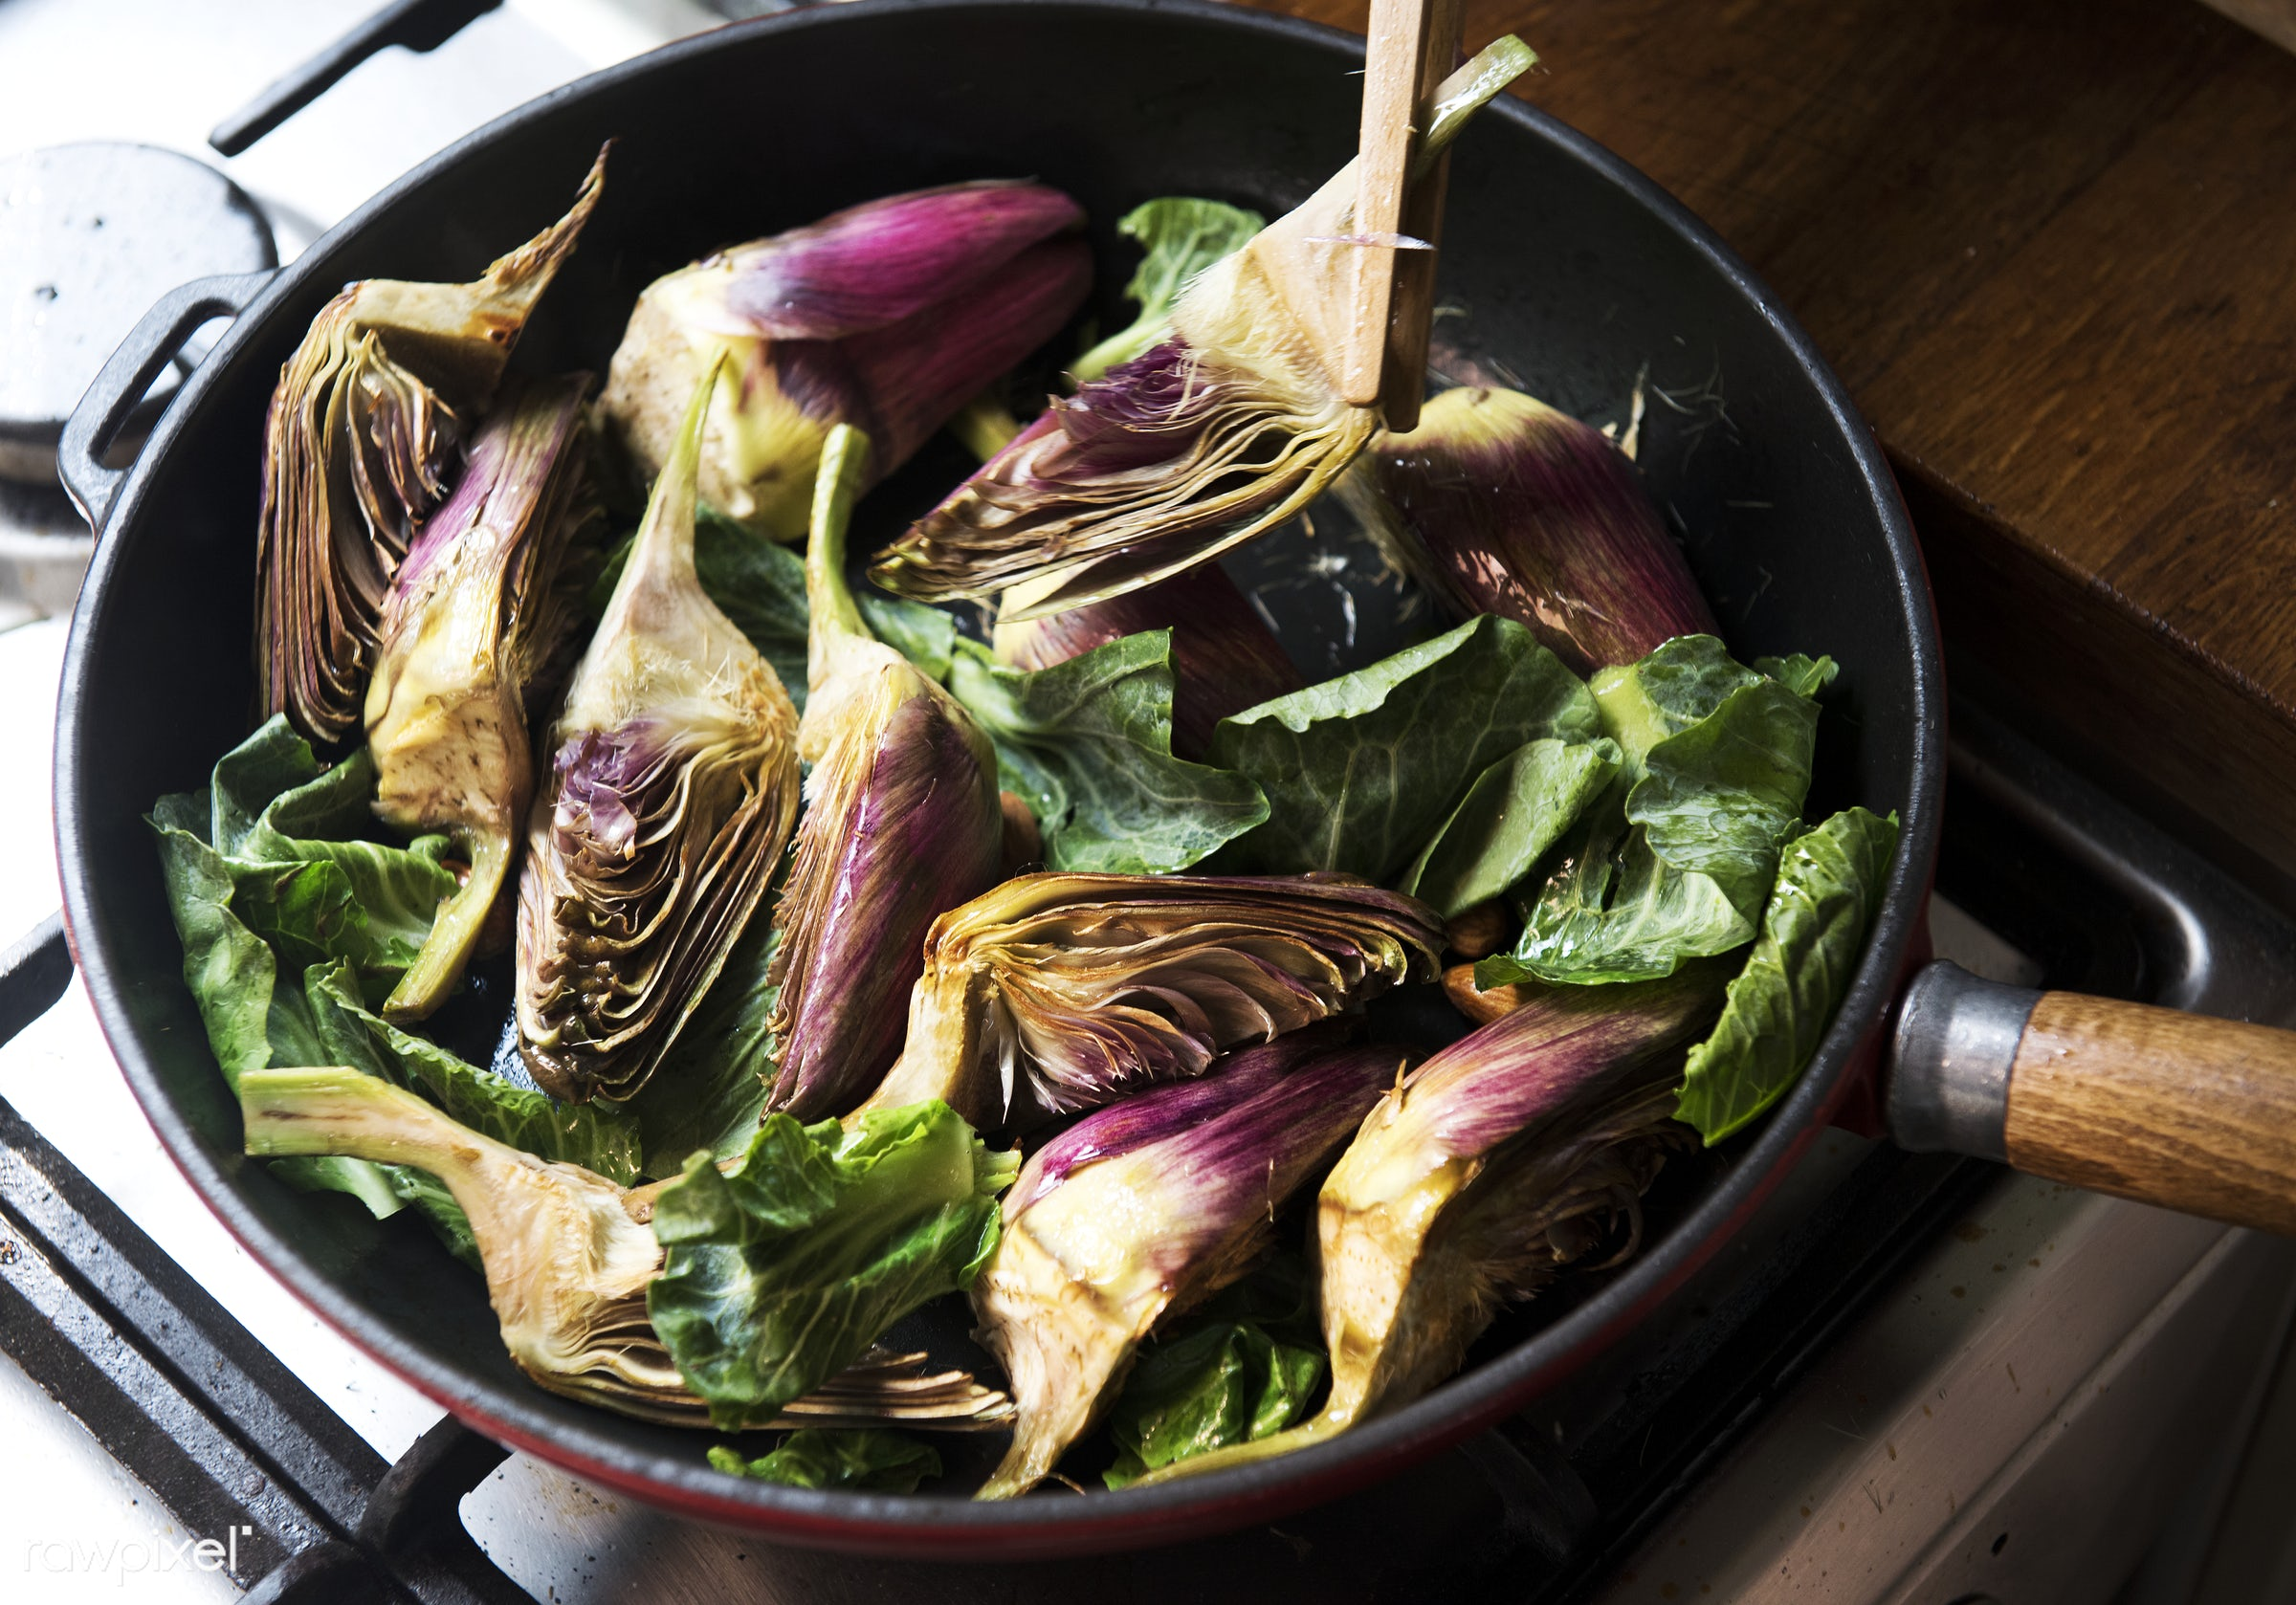 Heart of artichoke food photgraphy recipe idea - artichoke, cook, cooking, cuisine, delicious, dining, dinner, eating, food...